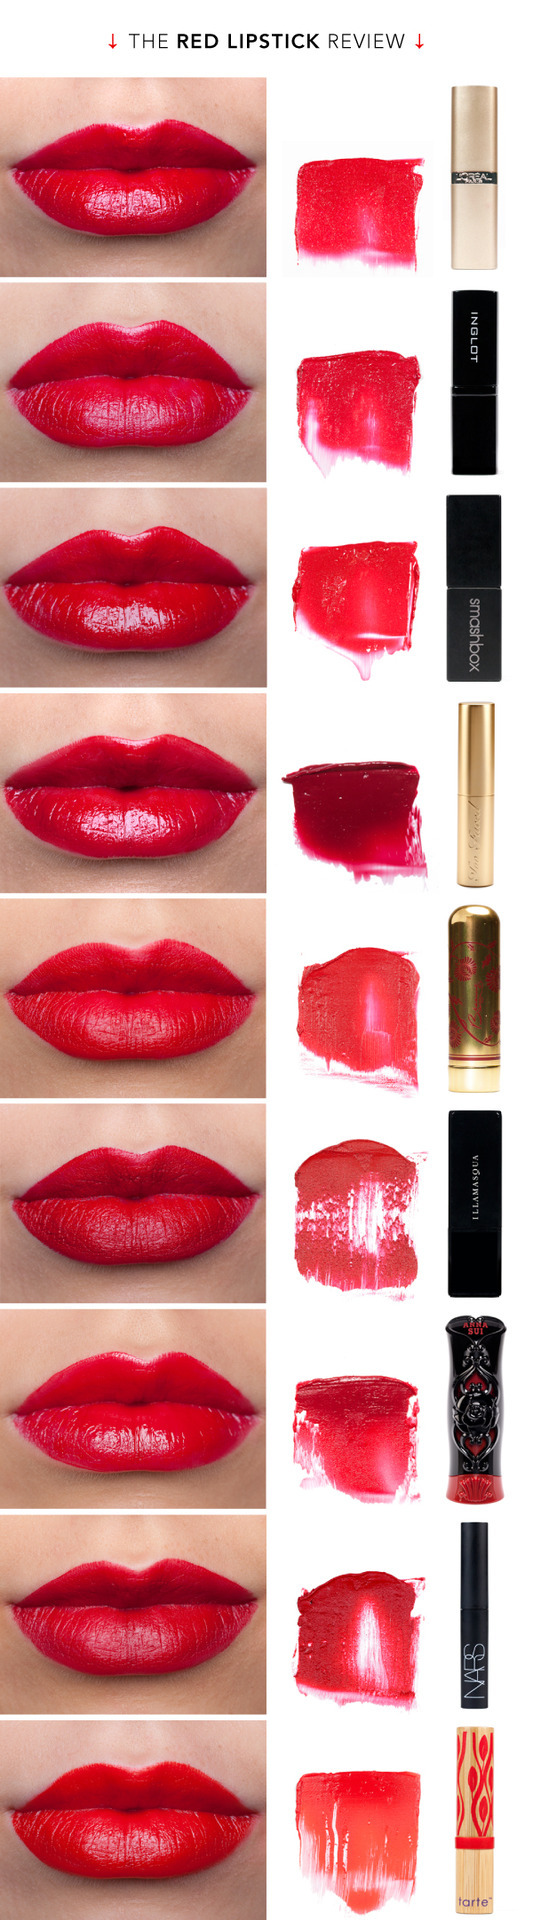 The Red Lipstick Review by Beautylish! I want to try the Too Faced and Illamasqua!